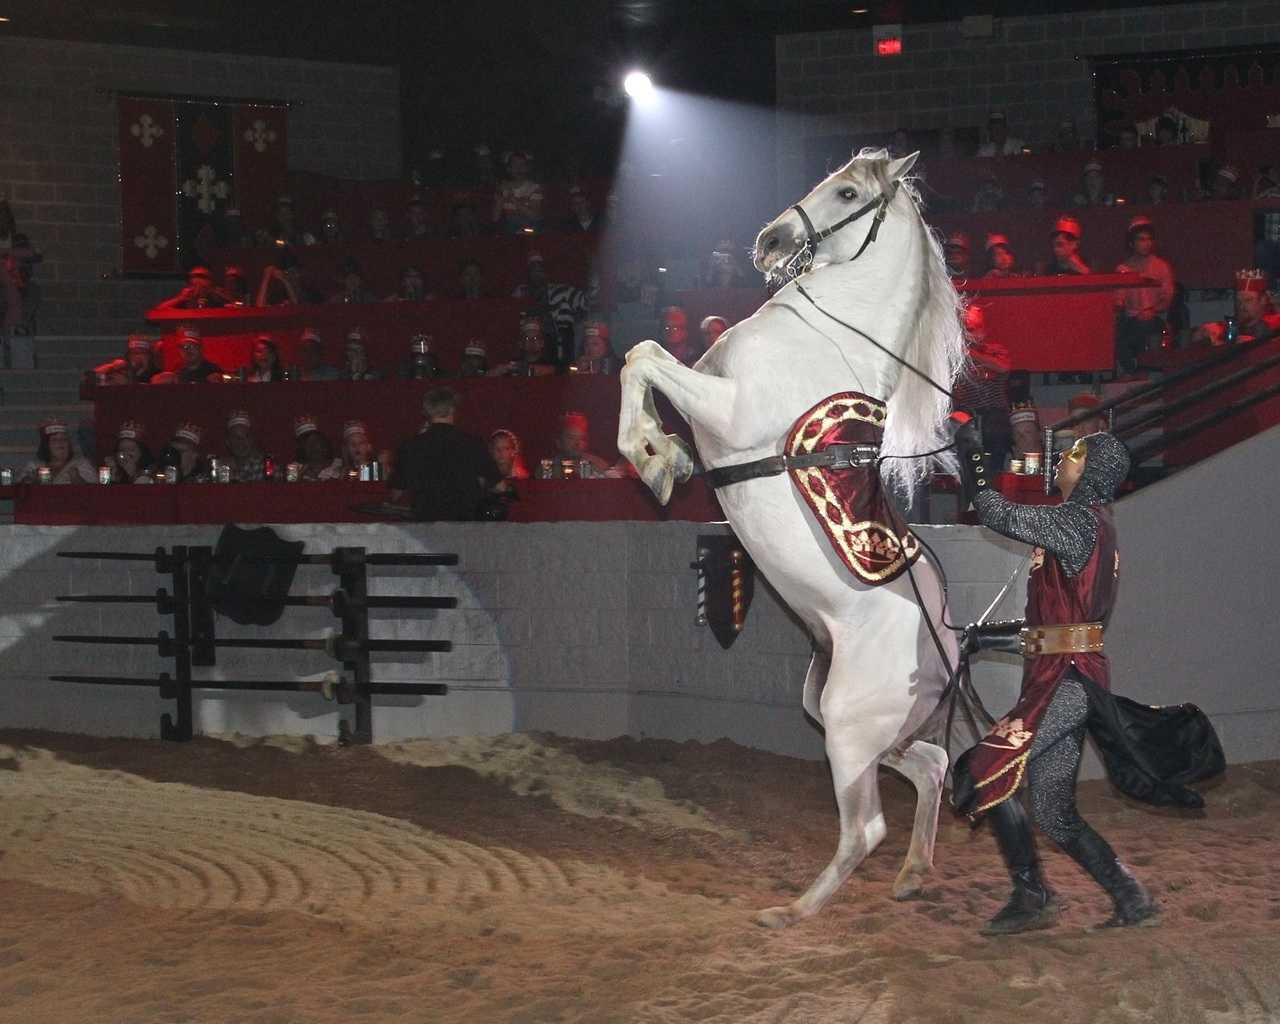 Are you looking for a unique field trip for your classroom, homeschool group or summer camp? Then check out a Medieval Times Educational Show in Buena Park, California! Imagine a history lesson presented by A King and his Noble Court set within the walls of an 11th century-style castle. Every detail is painstakingly recreated as your students take a personal journey back to the Middle Ages.